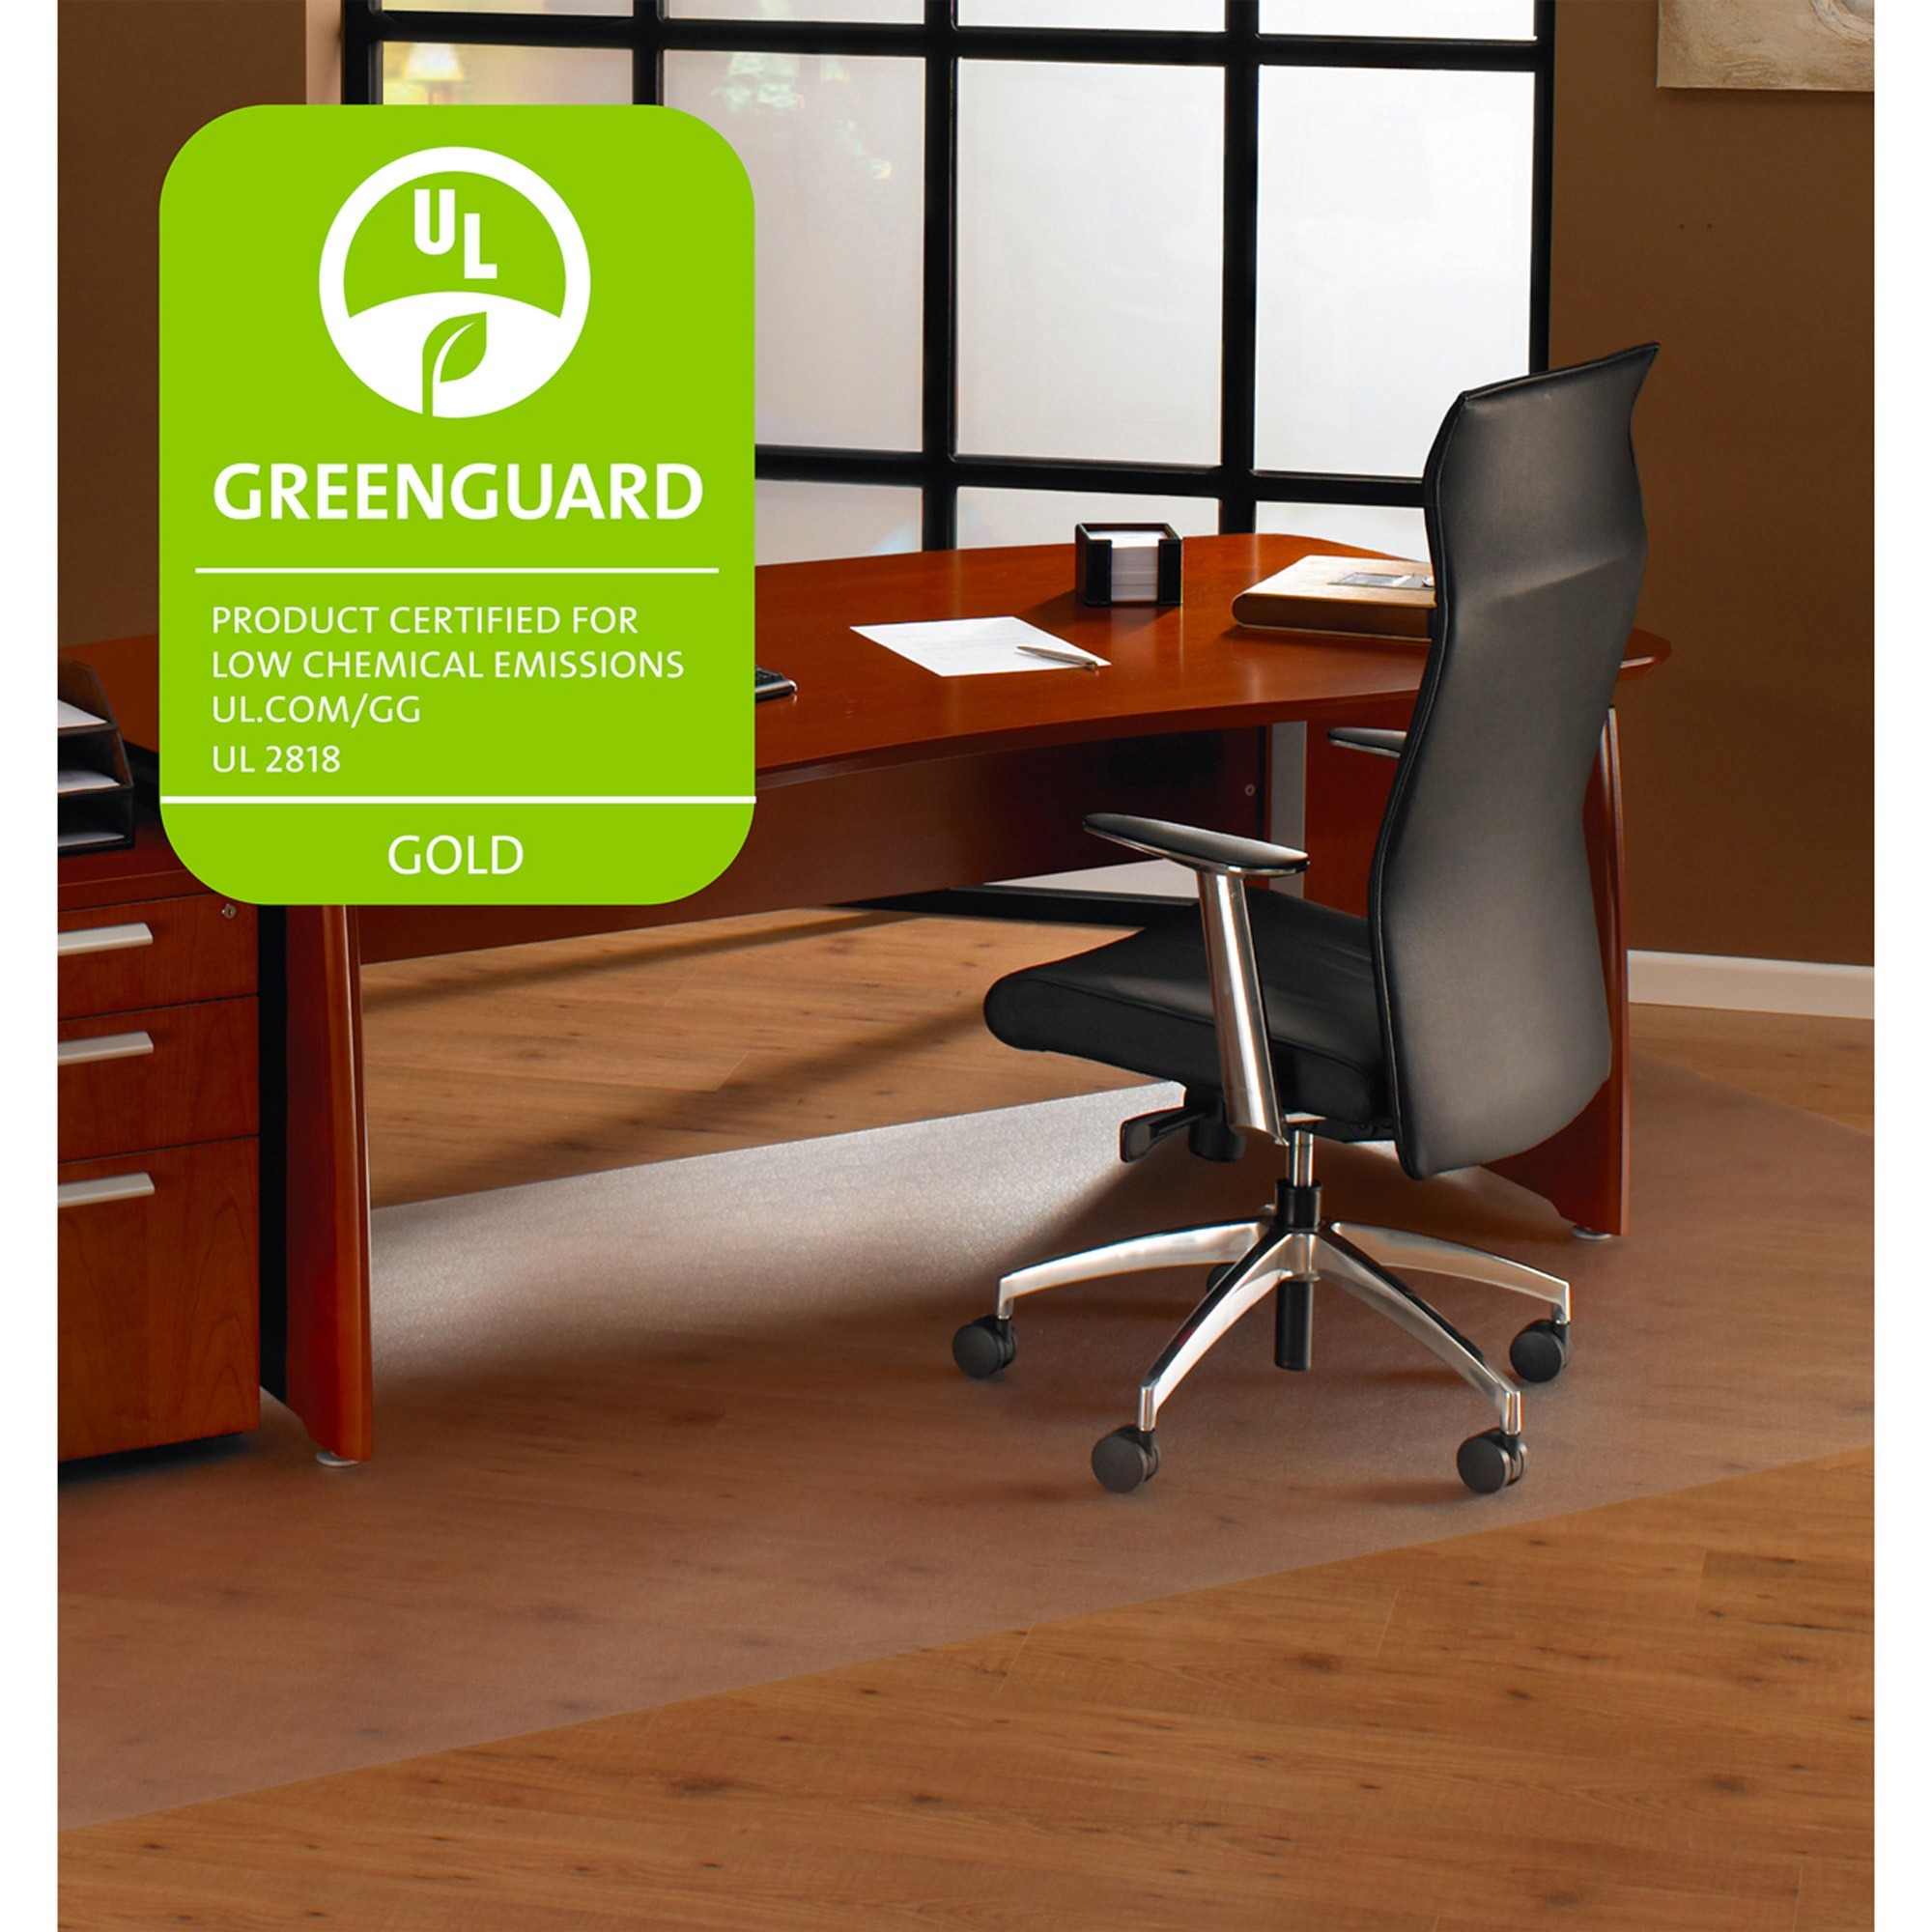 Floortex Cleartex Ultimat 60 x 60 Chair Mat for Hard Floor, Rectangular